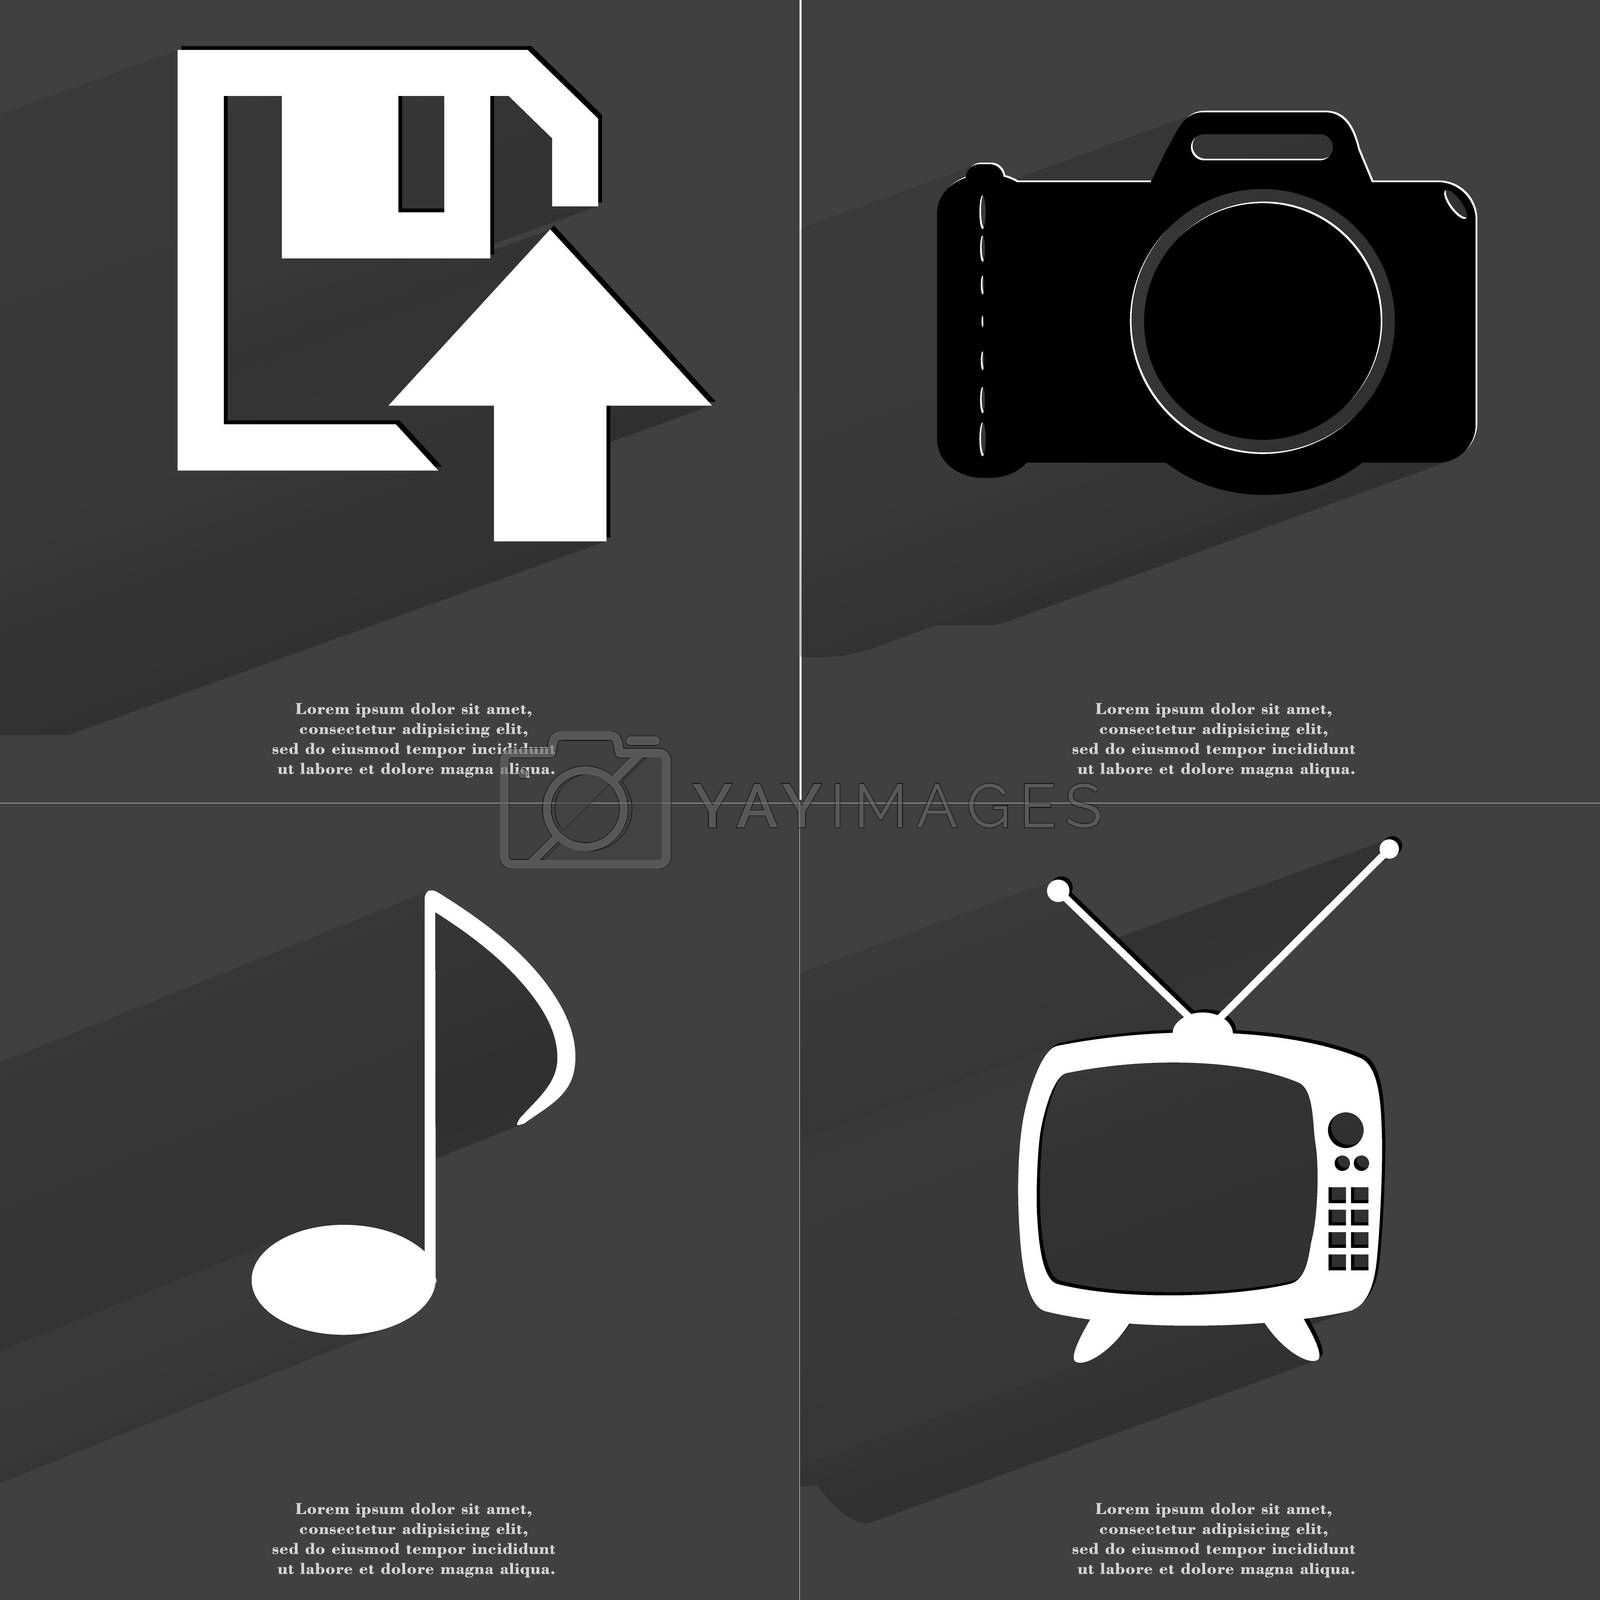 Royalty free image of Floppy disk upload icon, Camera, Note sign, Retro TV. Symbols with long shadow. Flat design by serhii_lohvyniuk